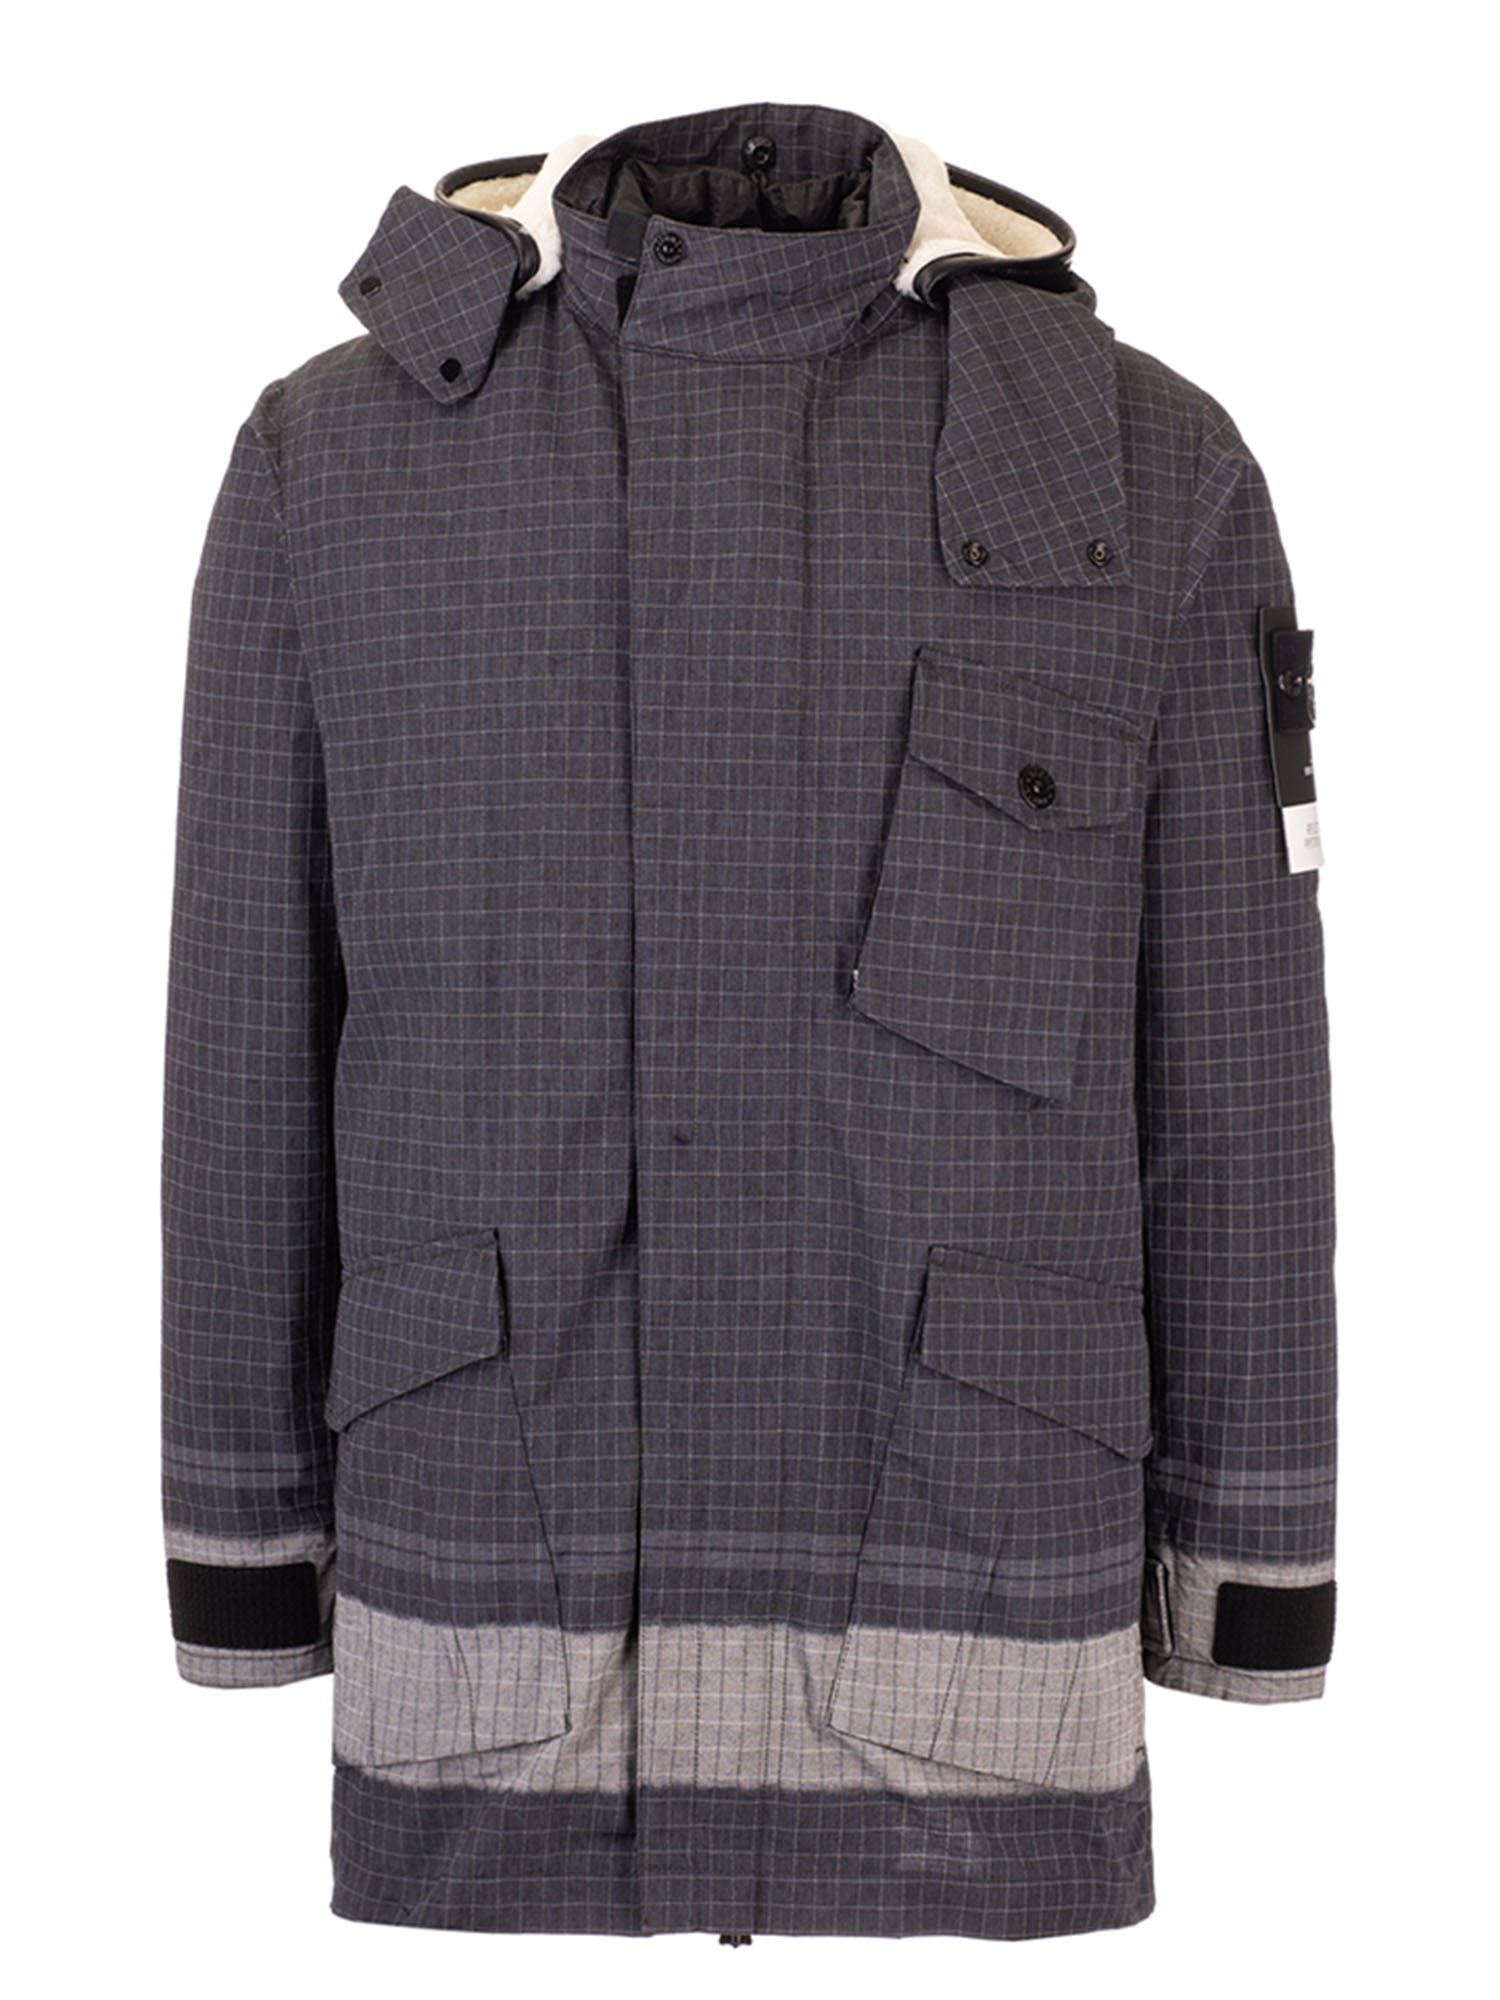 Stone Island REFLECTIVE RIPSTOP CHINÉ JACKET IN BLACK